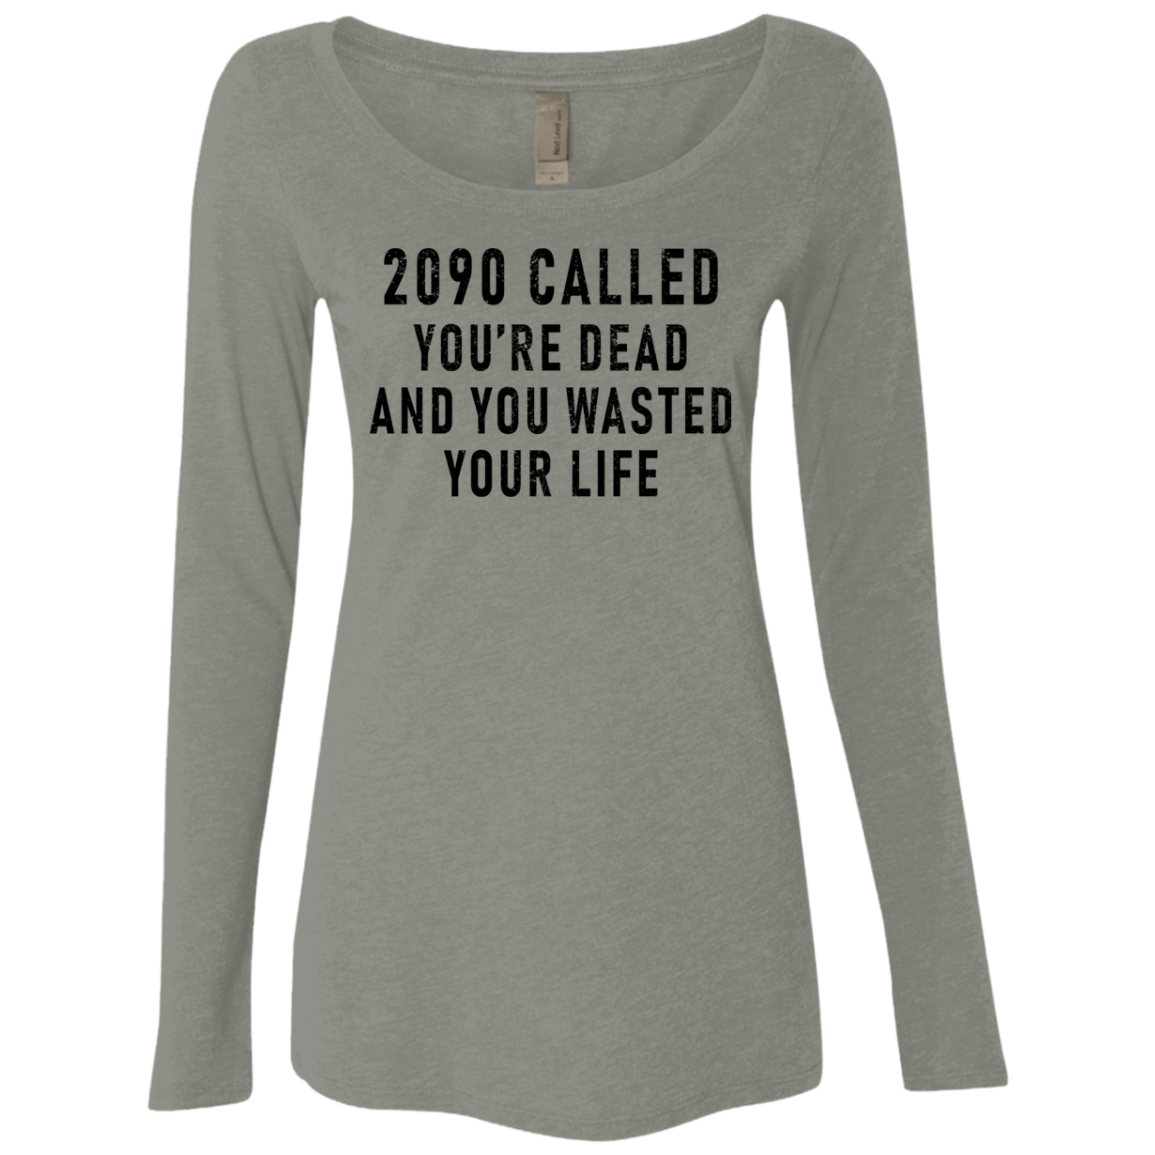 2090 Called You're Dead And You Wasted Your Life Women's Long Sleeve Tee